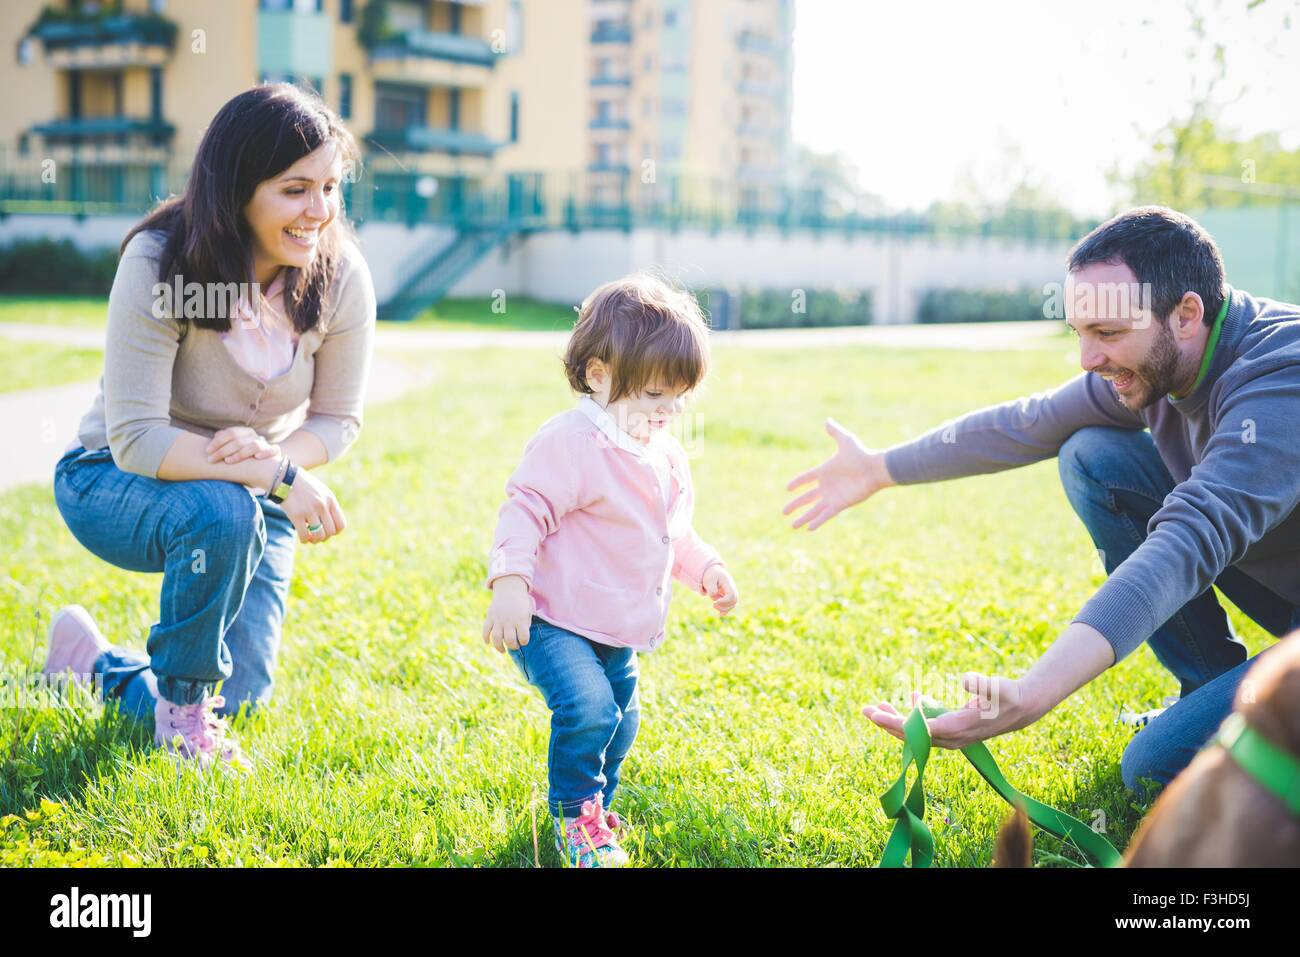 Mid adult couple with toddling toddler daughter in park - Stock Image